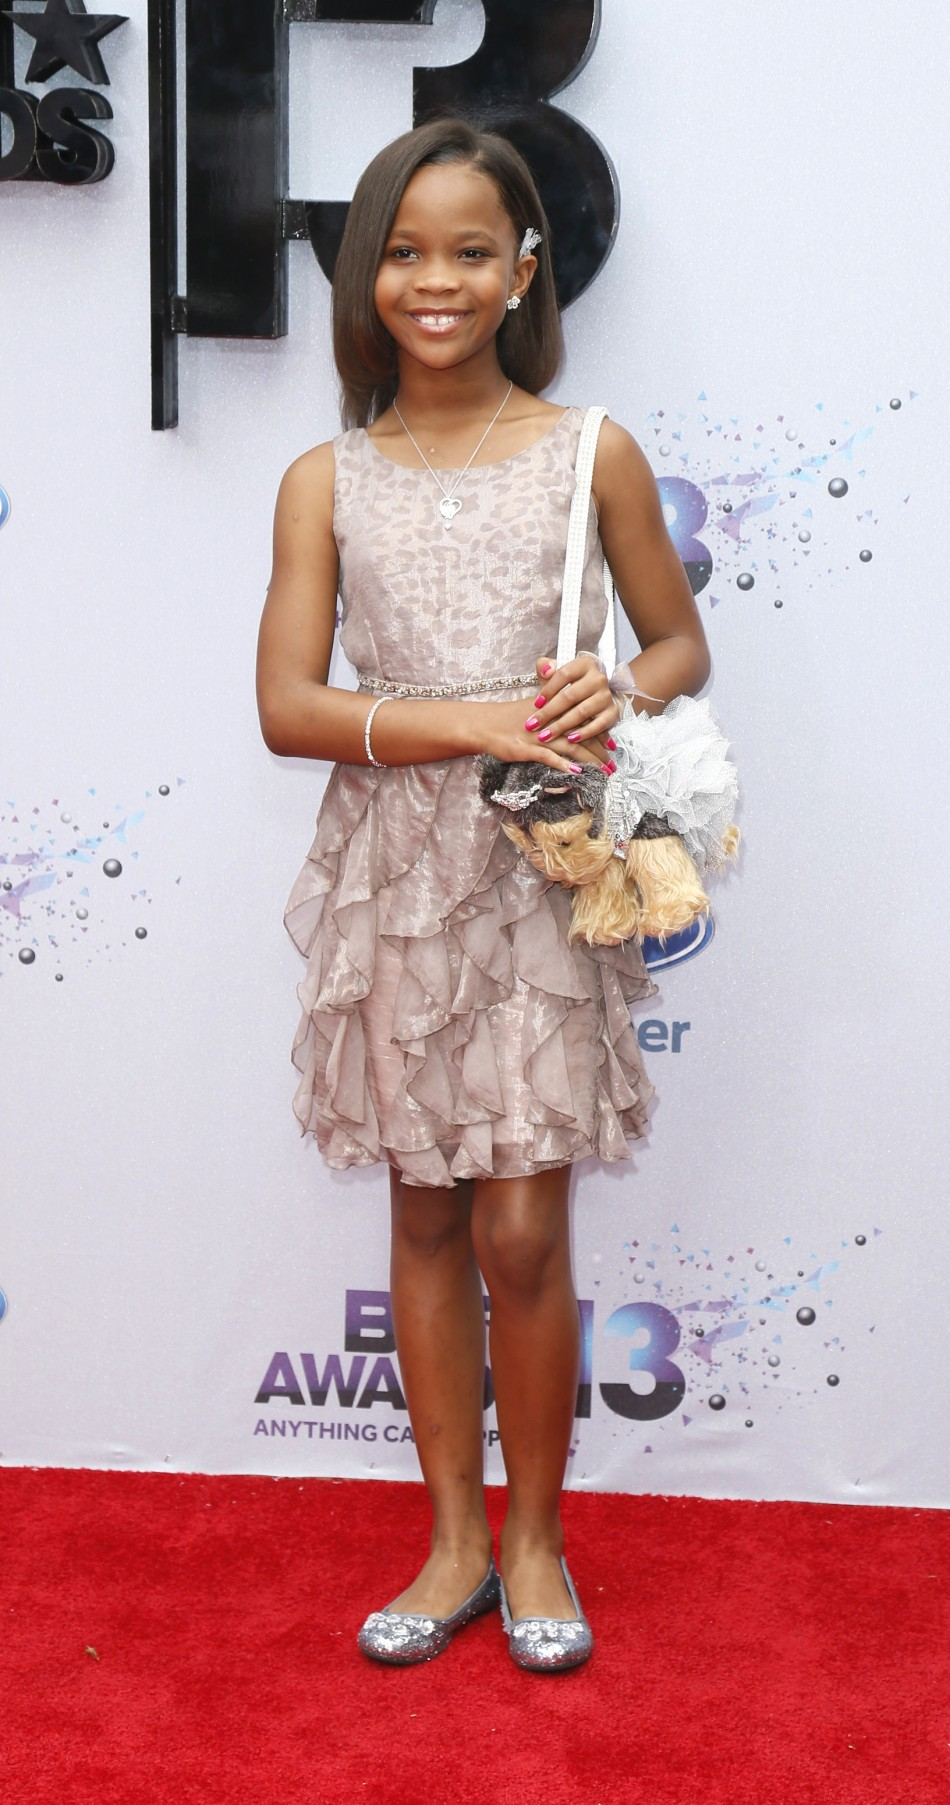 Actress Quvenzhane Wallis arrives at the 2013 BET Awards in Los Angeles, California June 30, 2013.